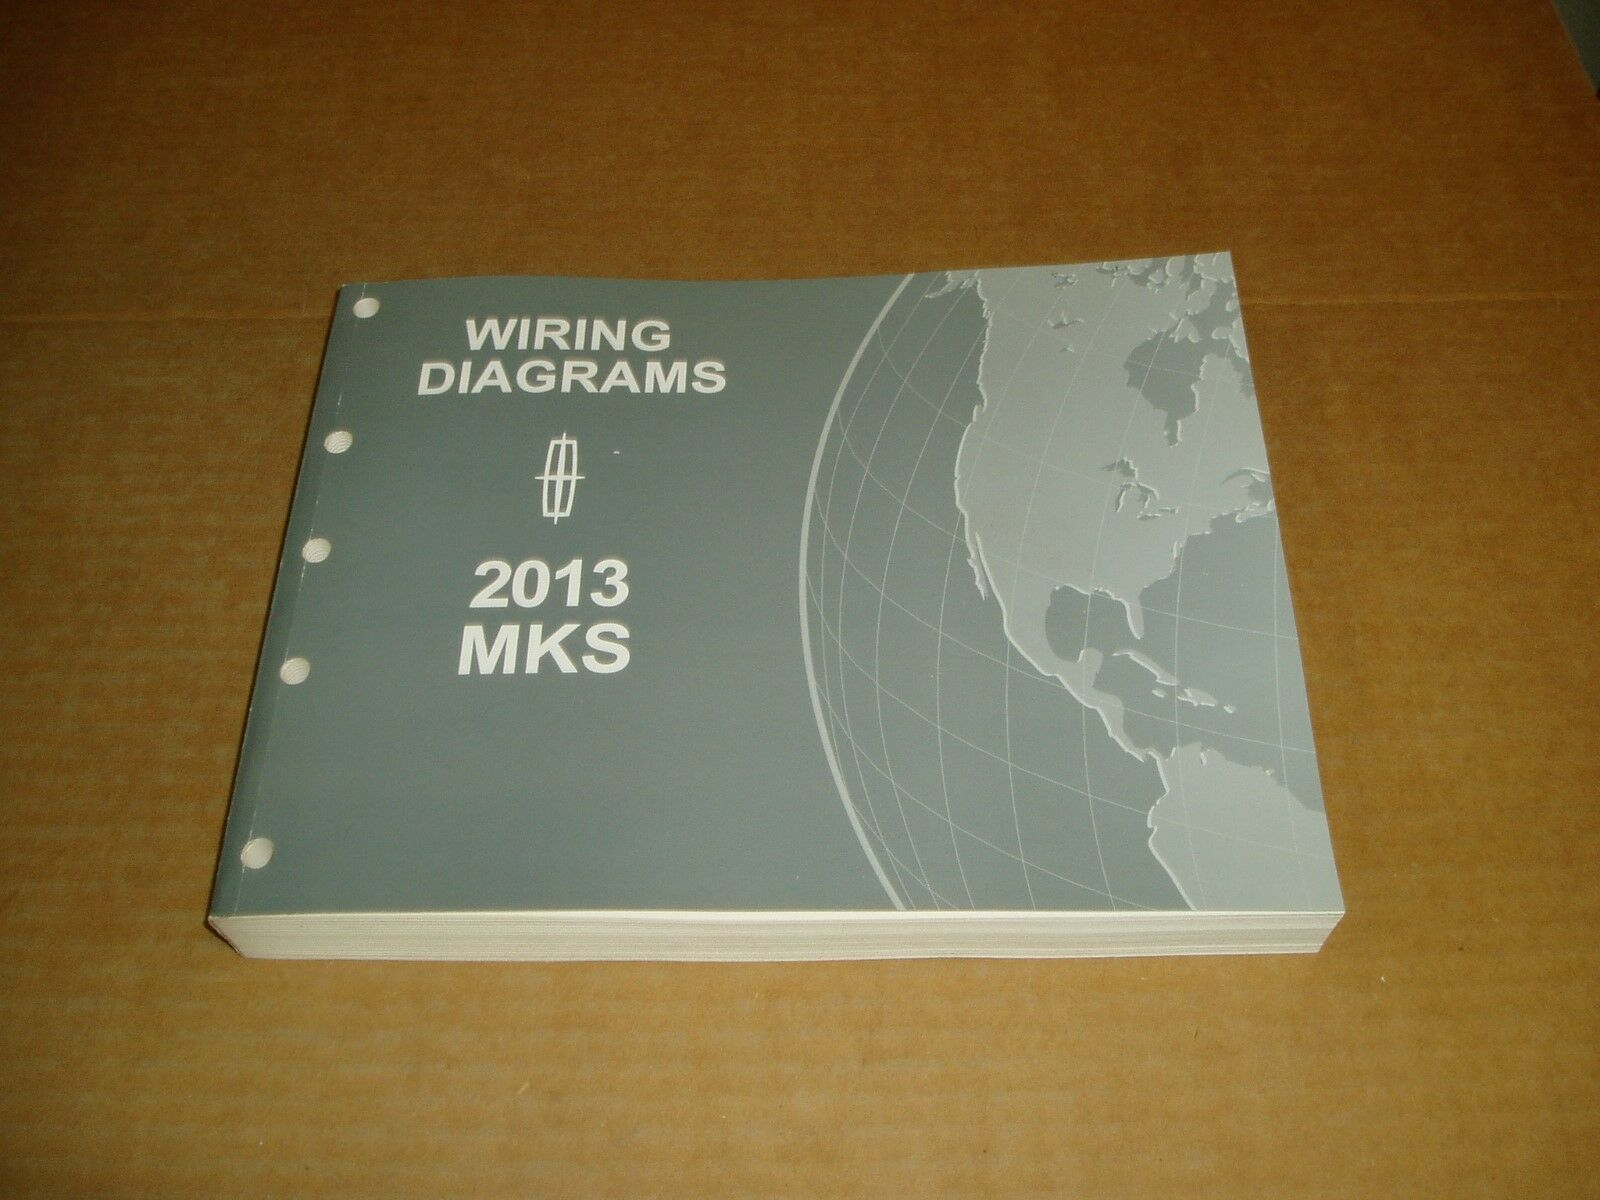 2013 Lincoln Mks Wiring Diagram Service Shop Dealer Repair Manual 2010 Mkz Diagrams 1 Of 4only Available